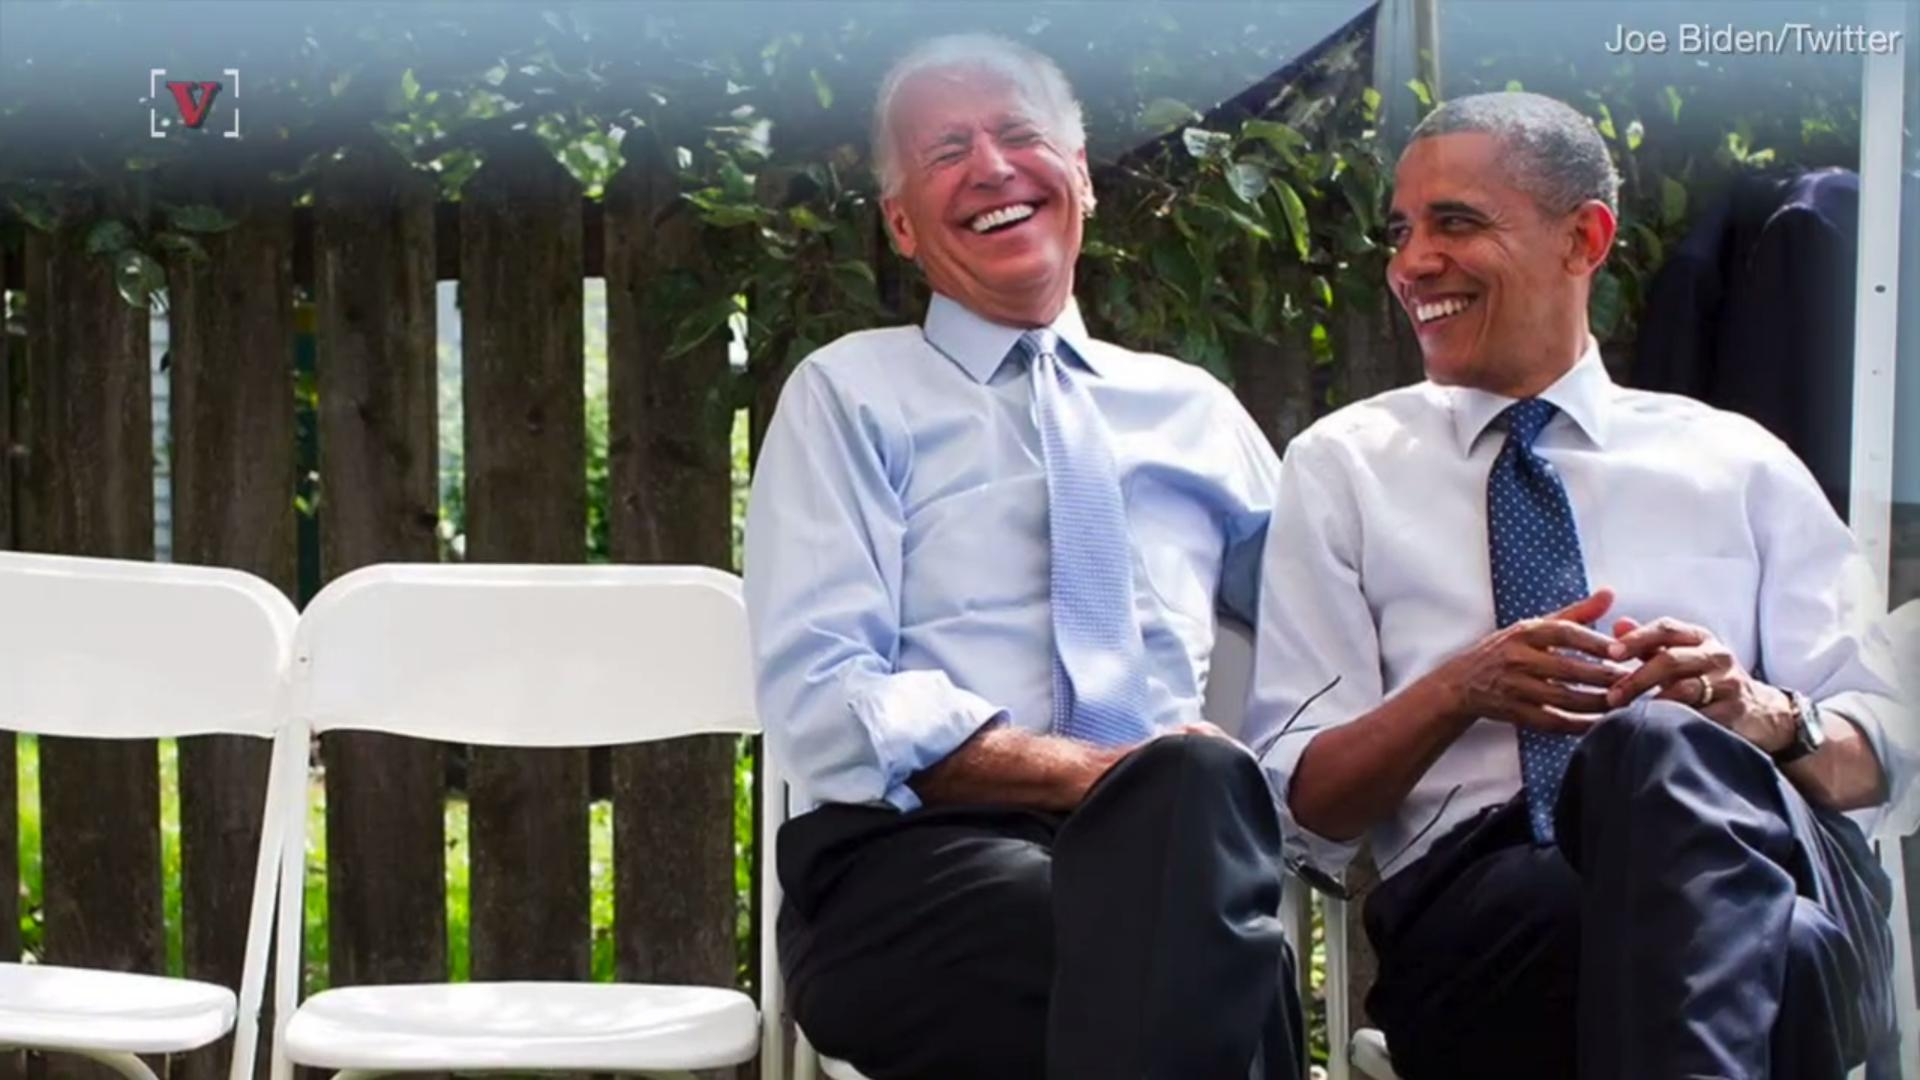 Get Ready For An Obama/Biden Animated Series